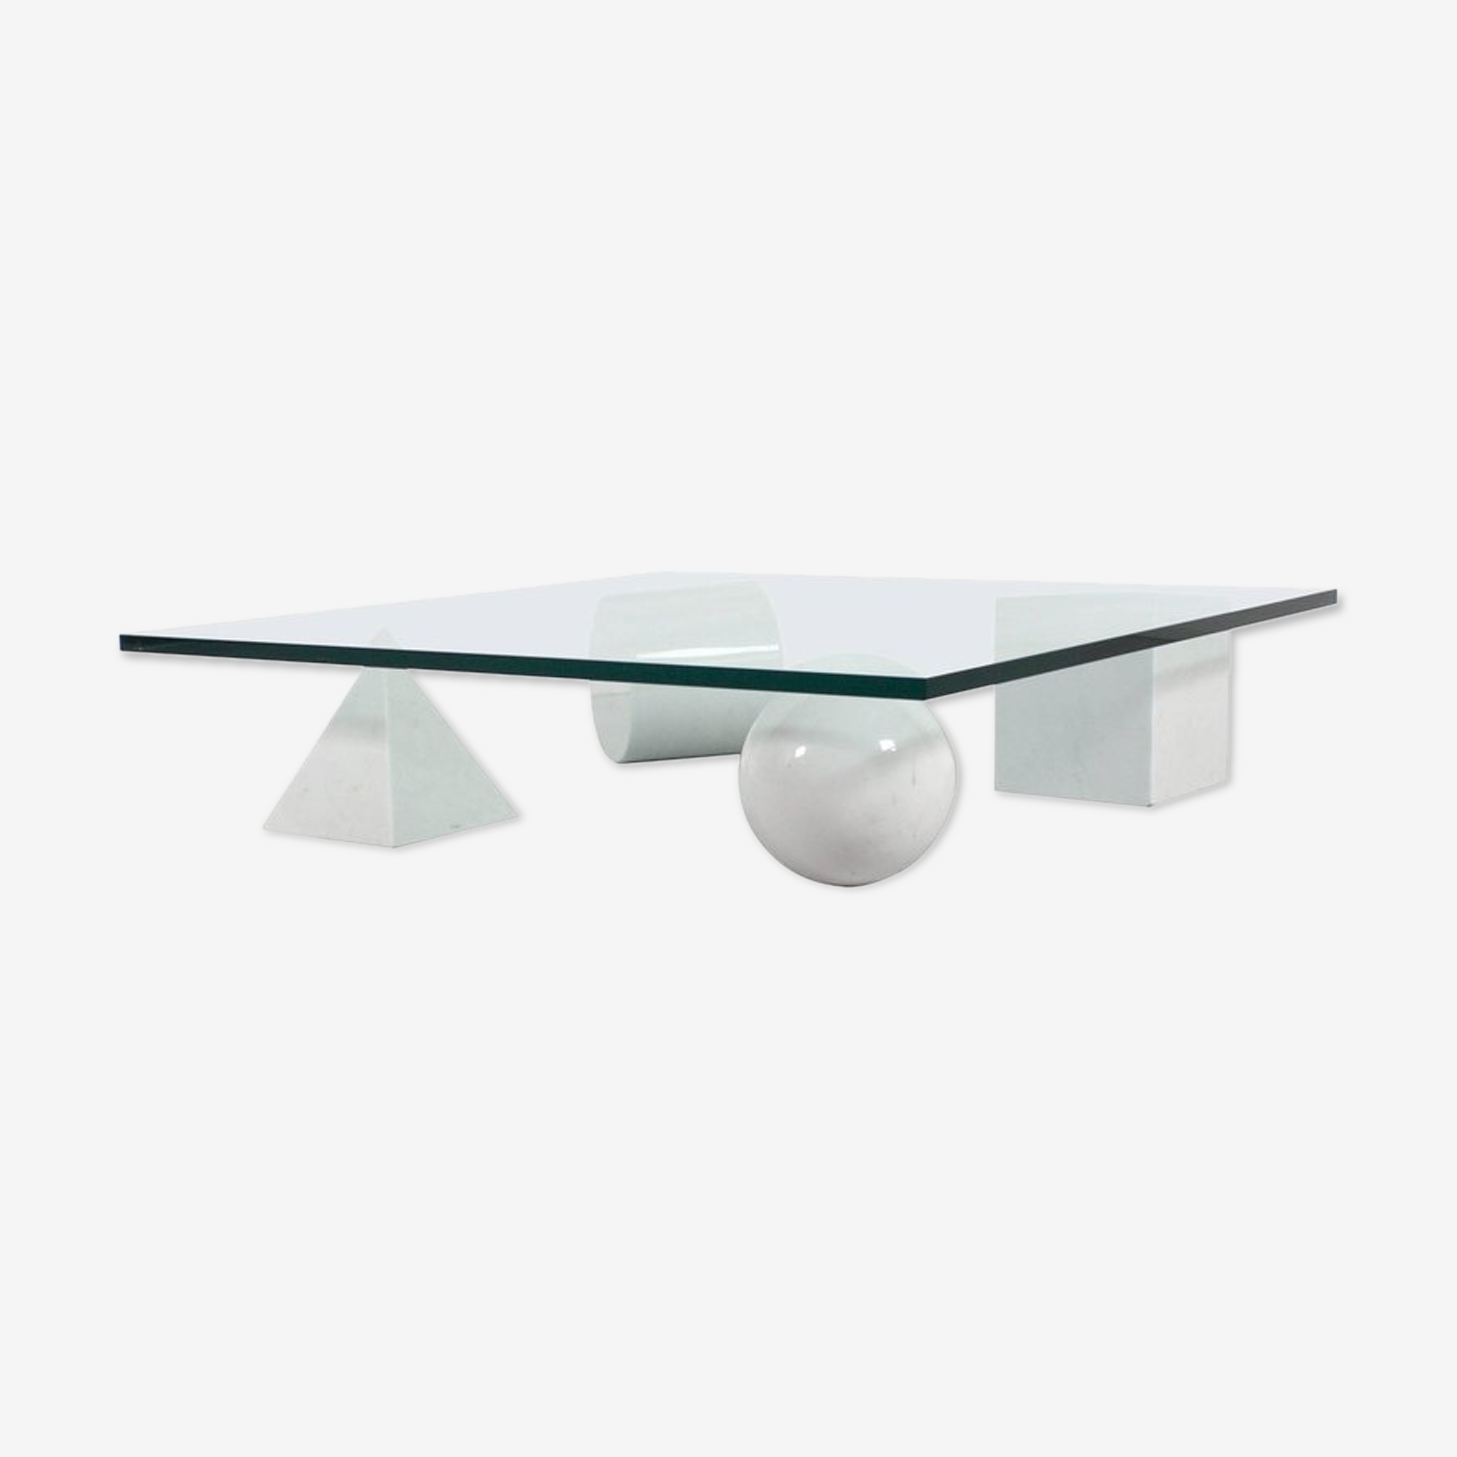 "Table basse ""Metaphora"" Massimo & Lella Vignelli 1979"